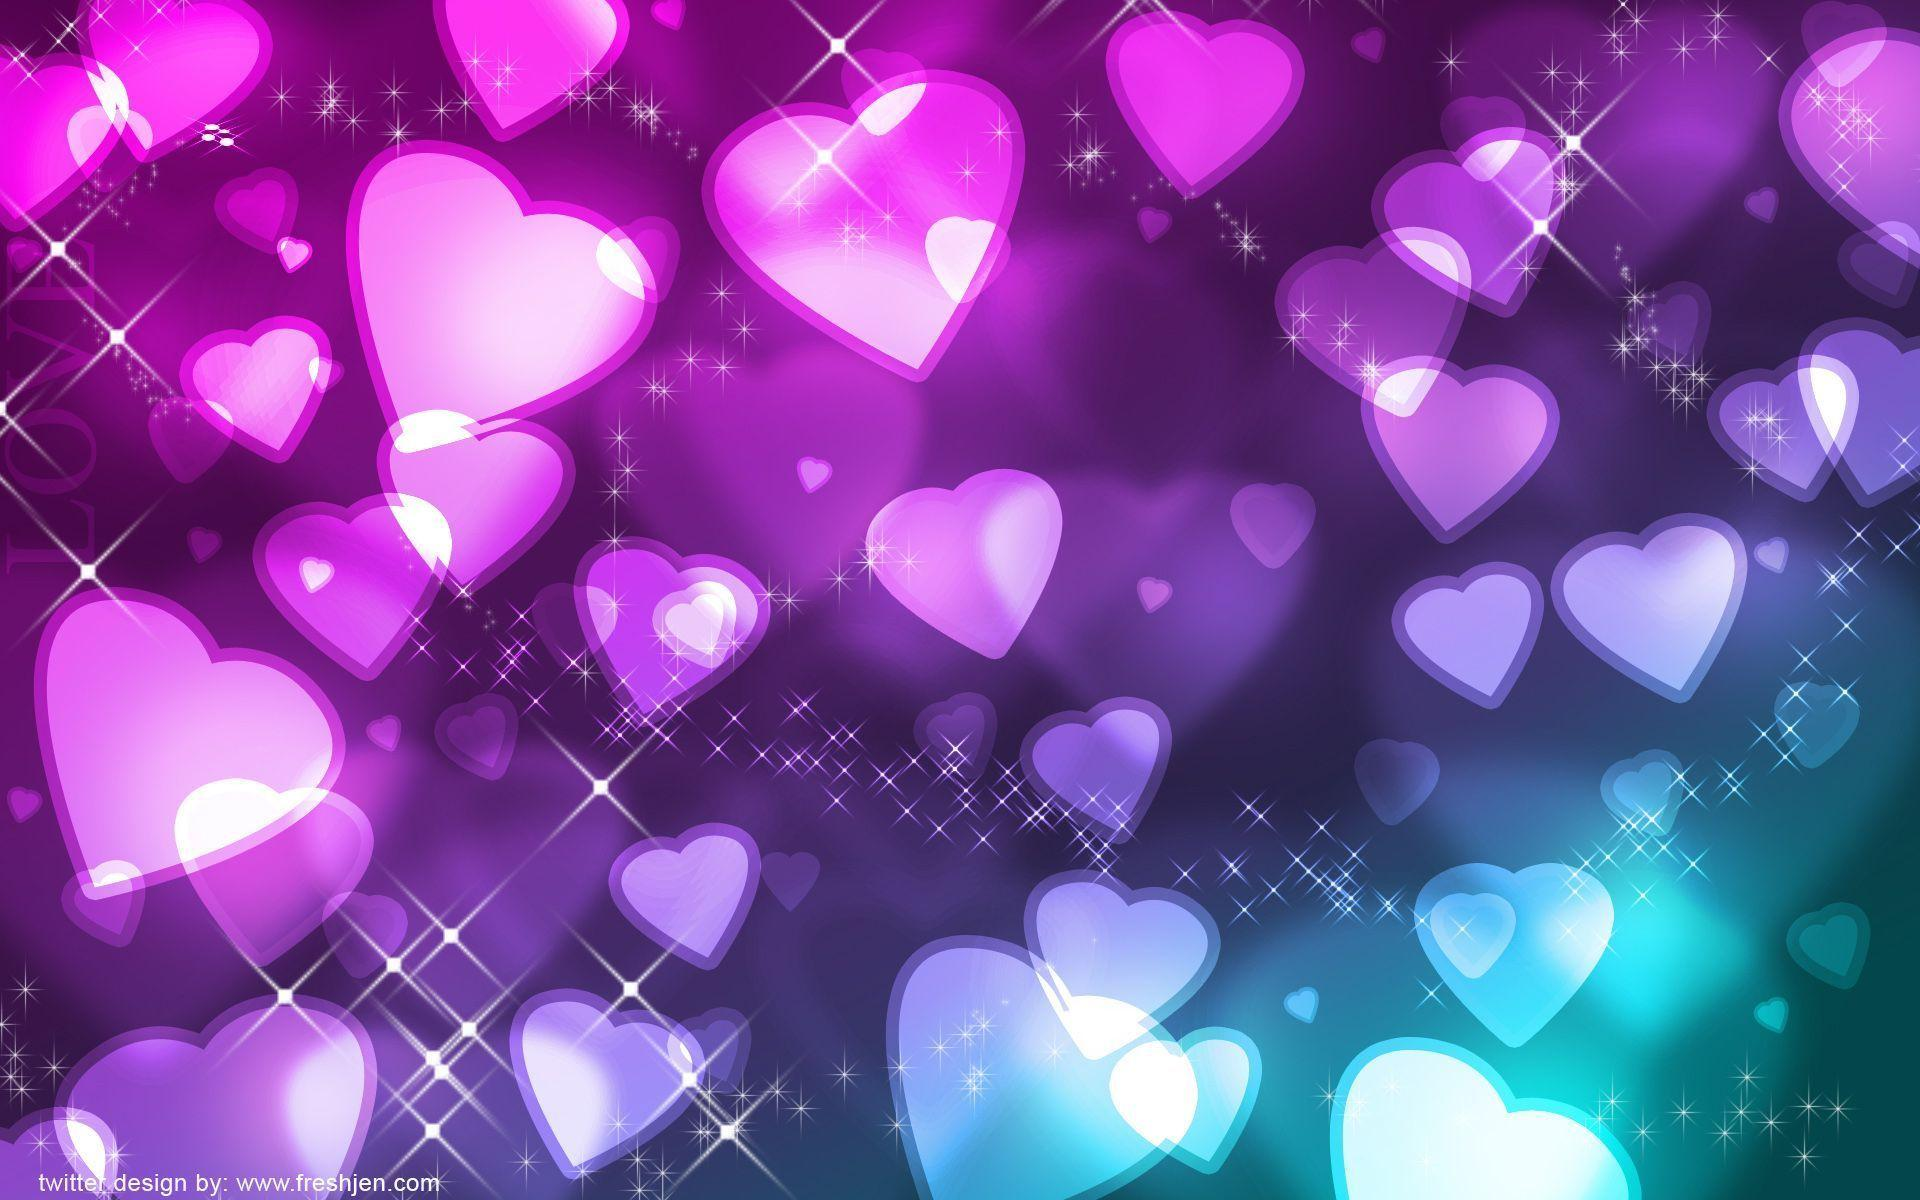 Purple And Black Hearts Wallpaper: Purple Hearts Backgrounds